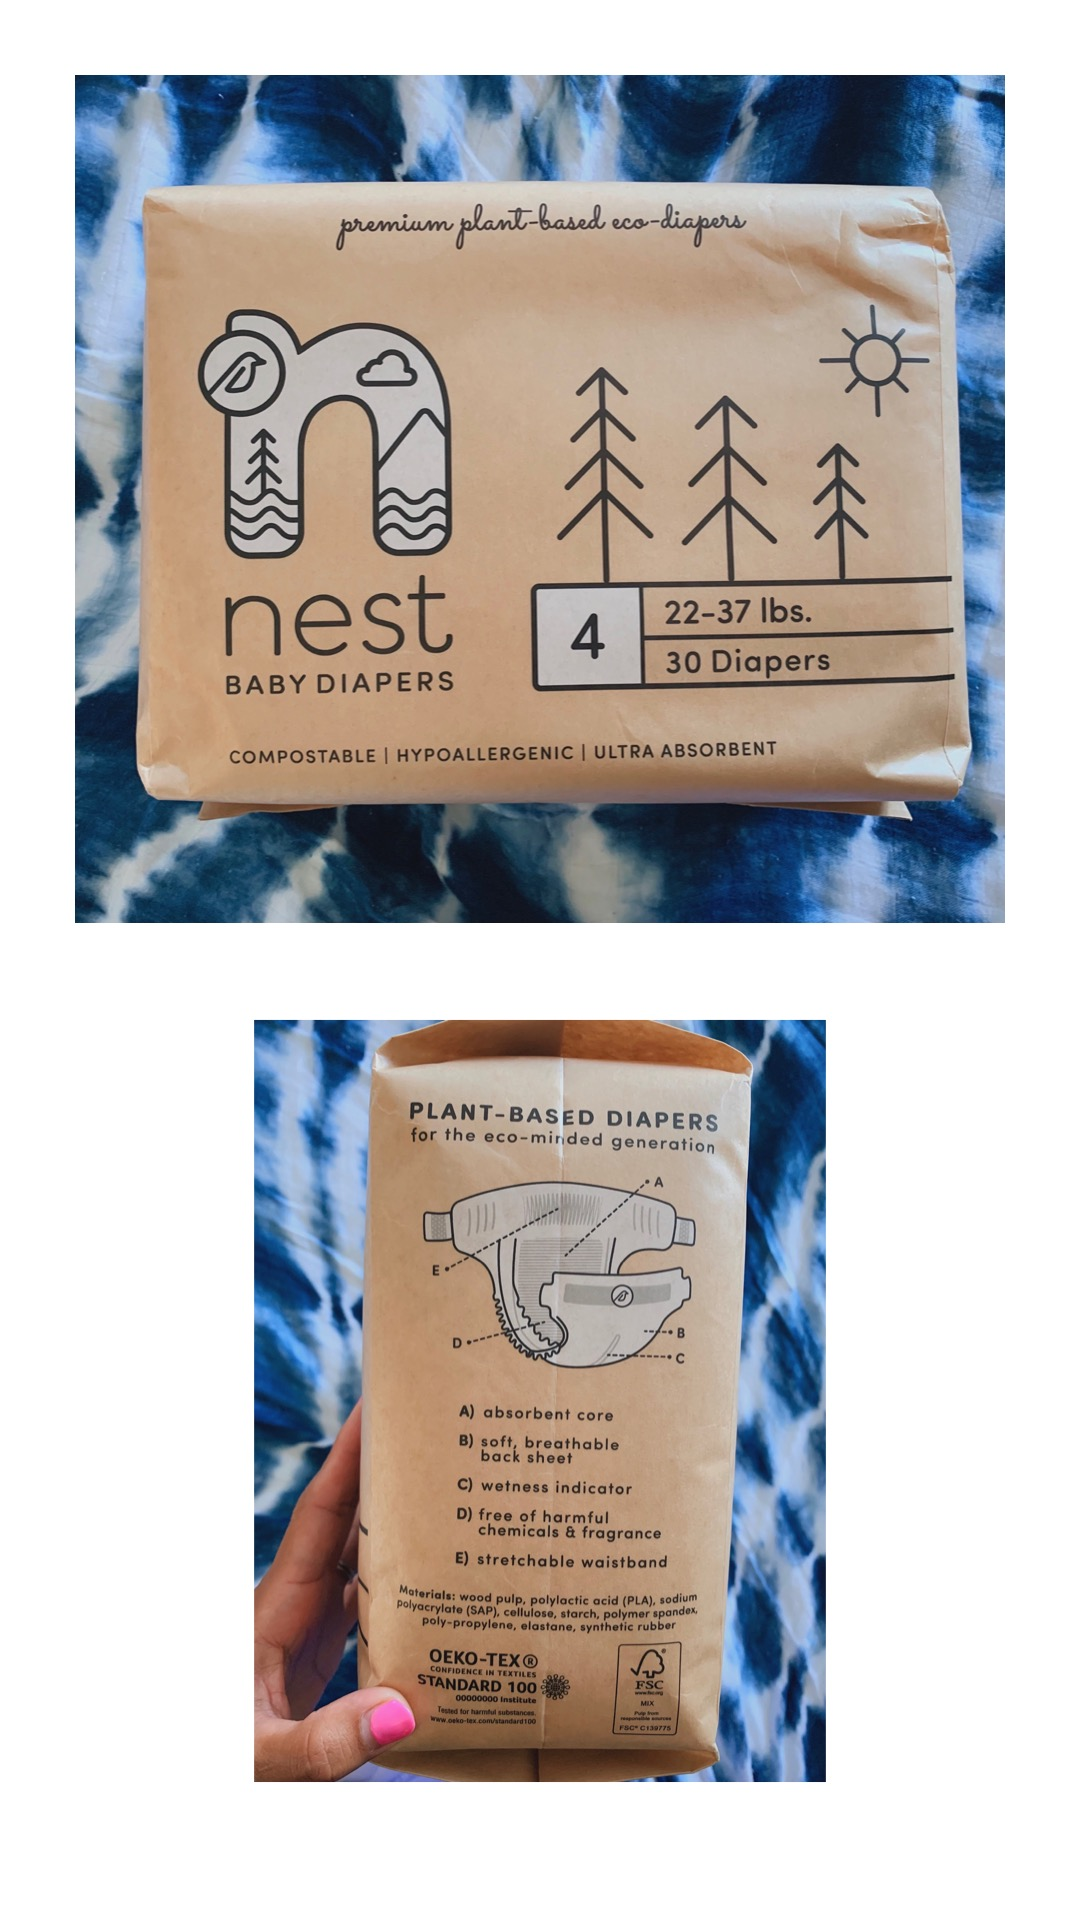 Nest diapers has partnered with compost companies in the area to come and properly dispose of your diapers